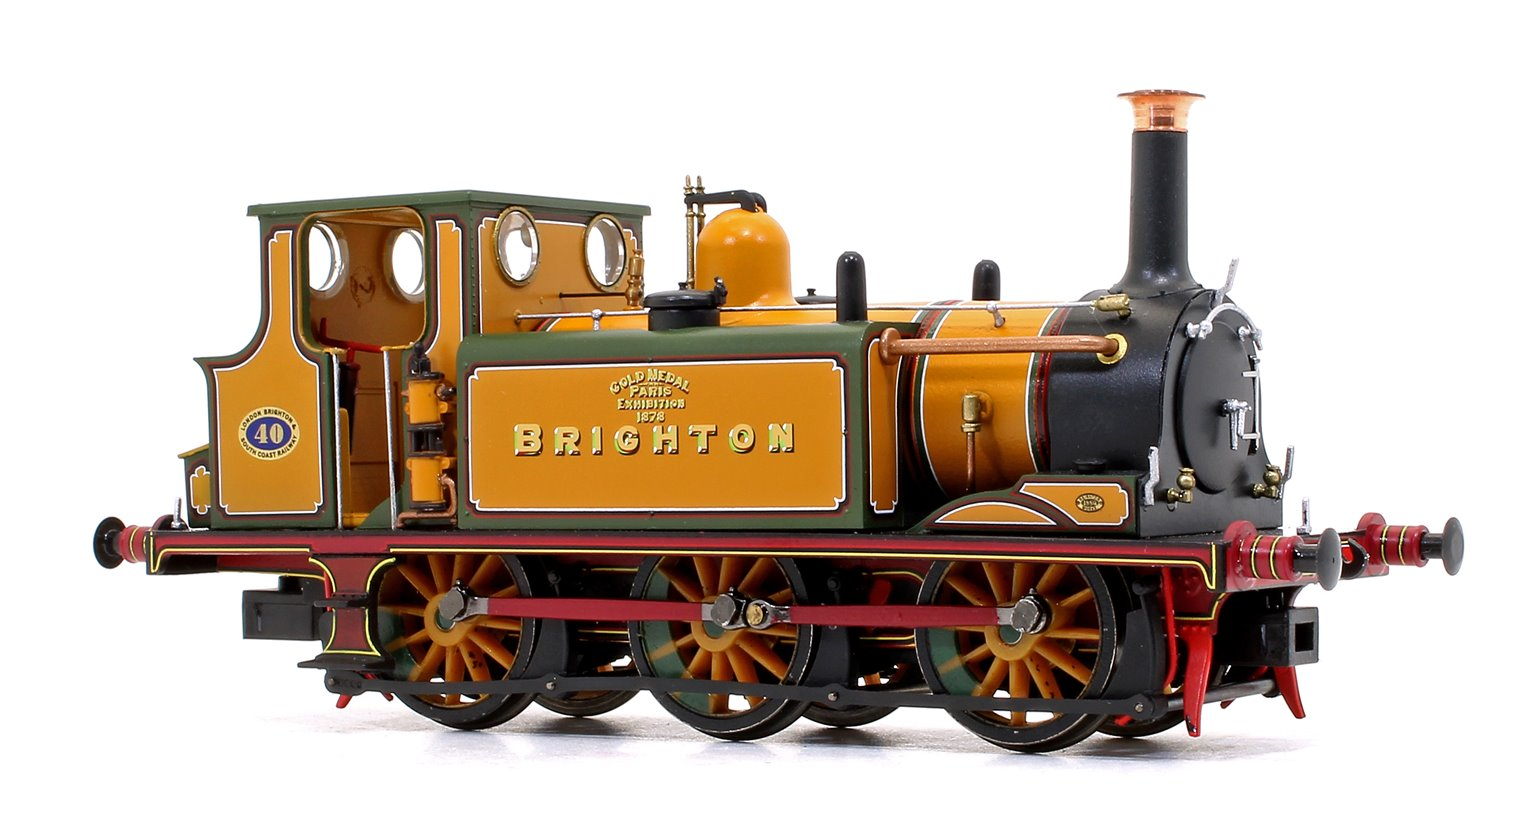 Stroudley Terrier A1 Class LBSC Stroudley Improved Engine Green Brighton Gold 0-6-0 Tank Locomotive DCC Ready